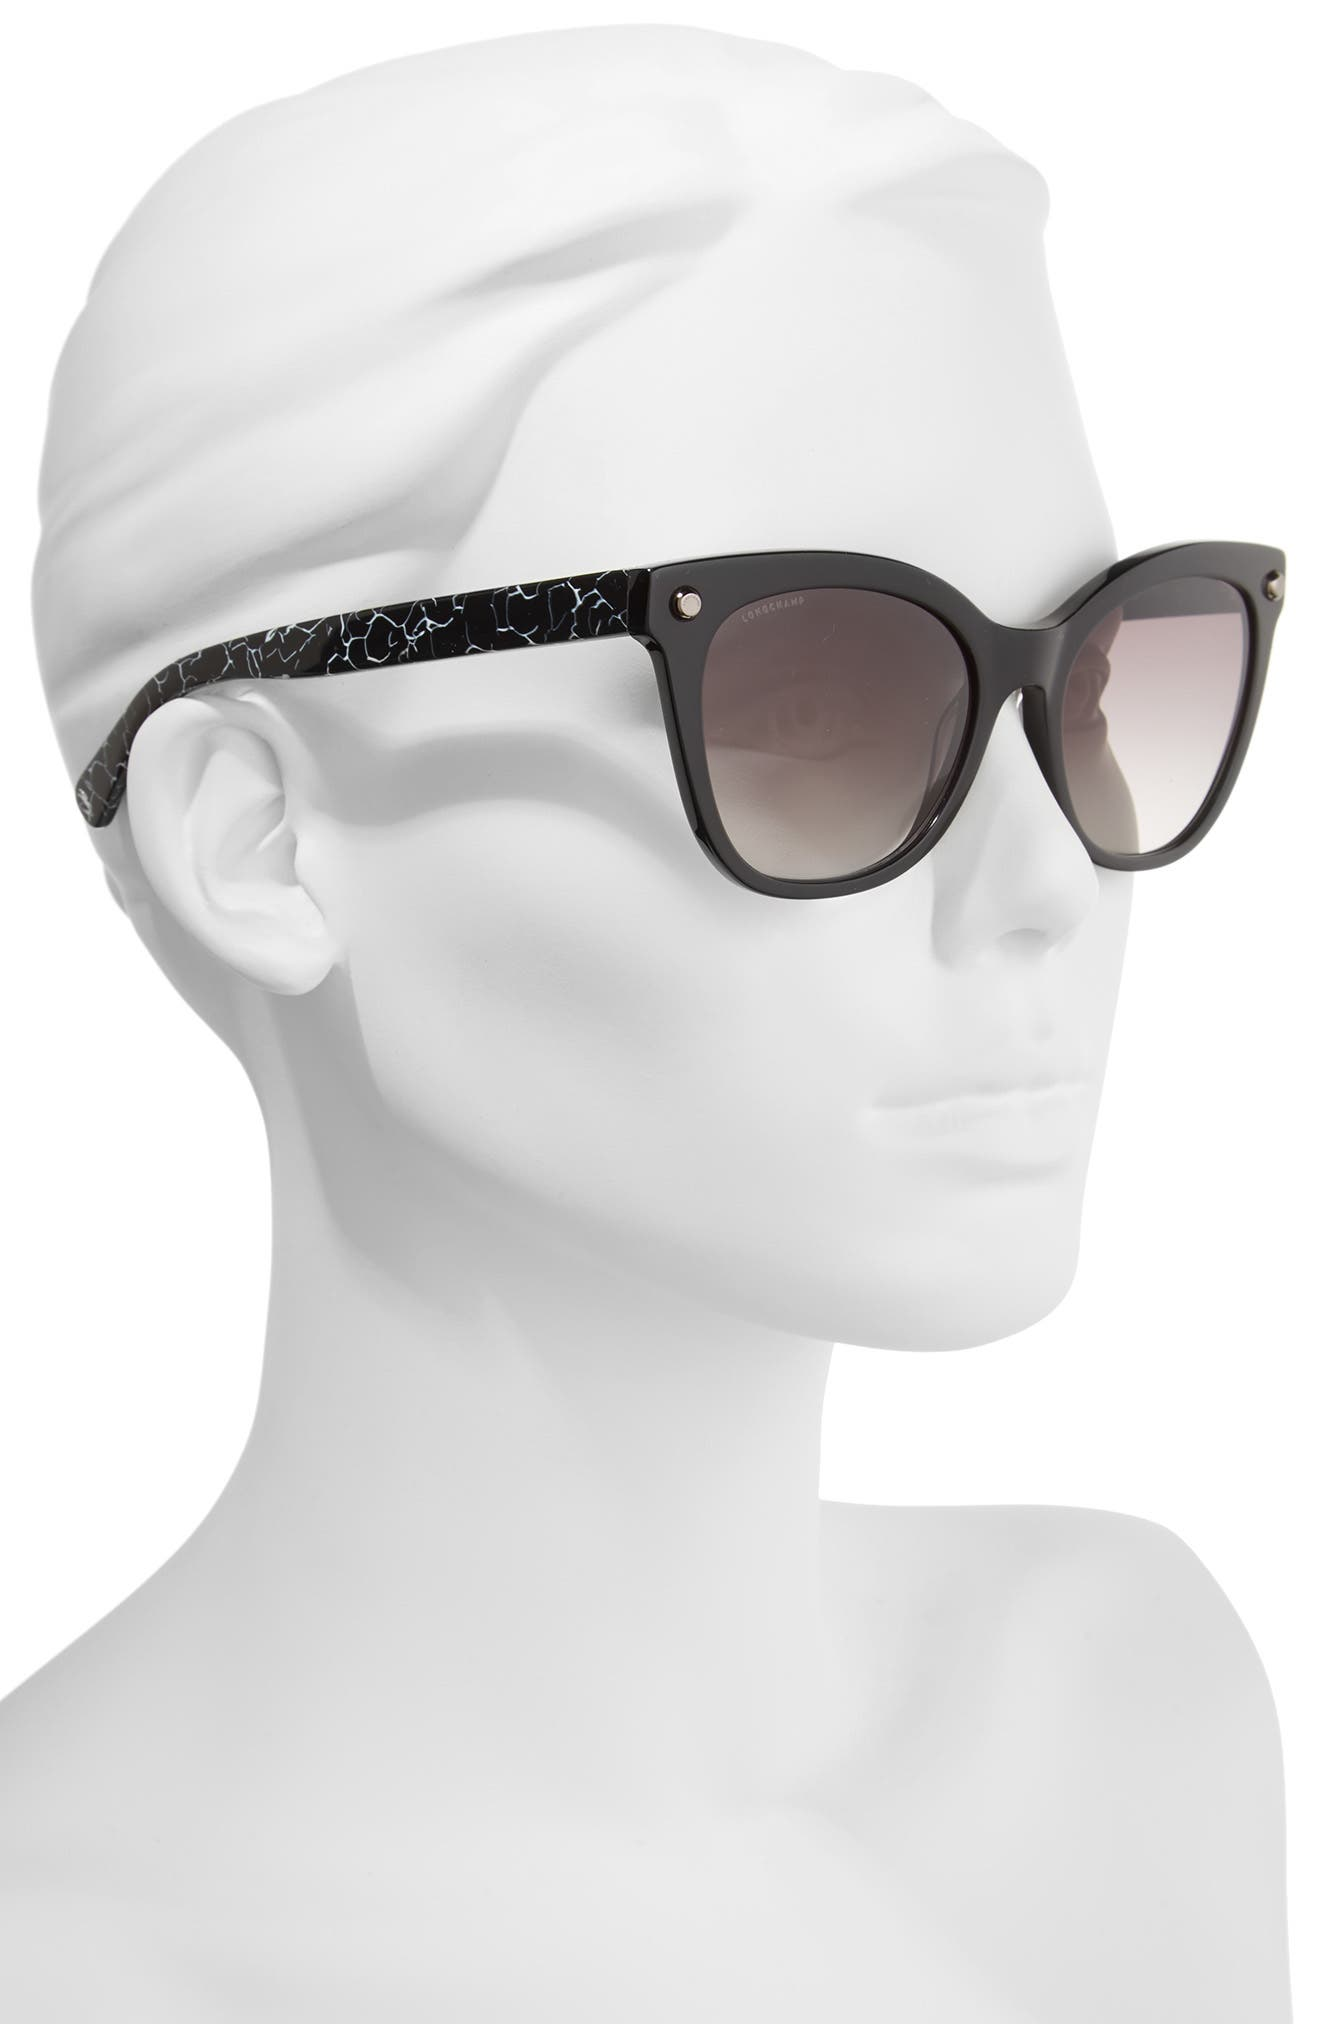 55mm Cat Eye Sunglasses,                             Alternate thumbnail 2, color,                             001